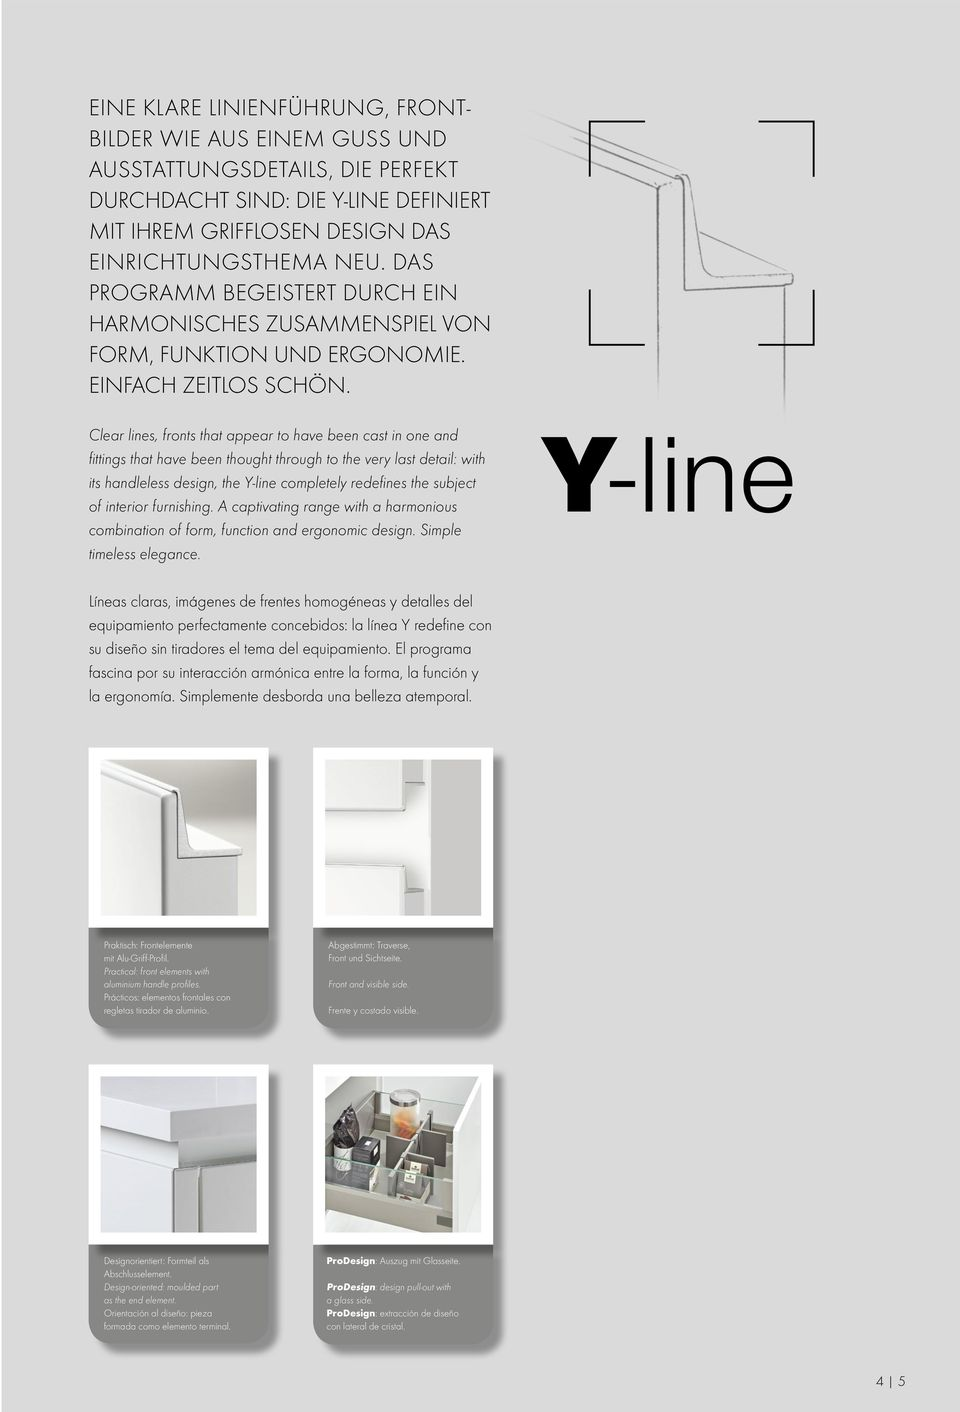 Clear lines, fronts that appear to have been cast in one and fittings that have been thought through to the very last detail: with its handleless design, the Y-line completely redefines the subject